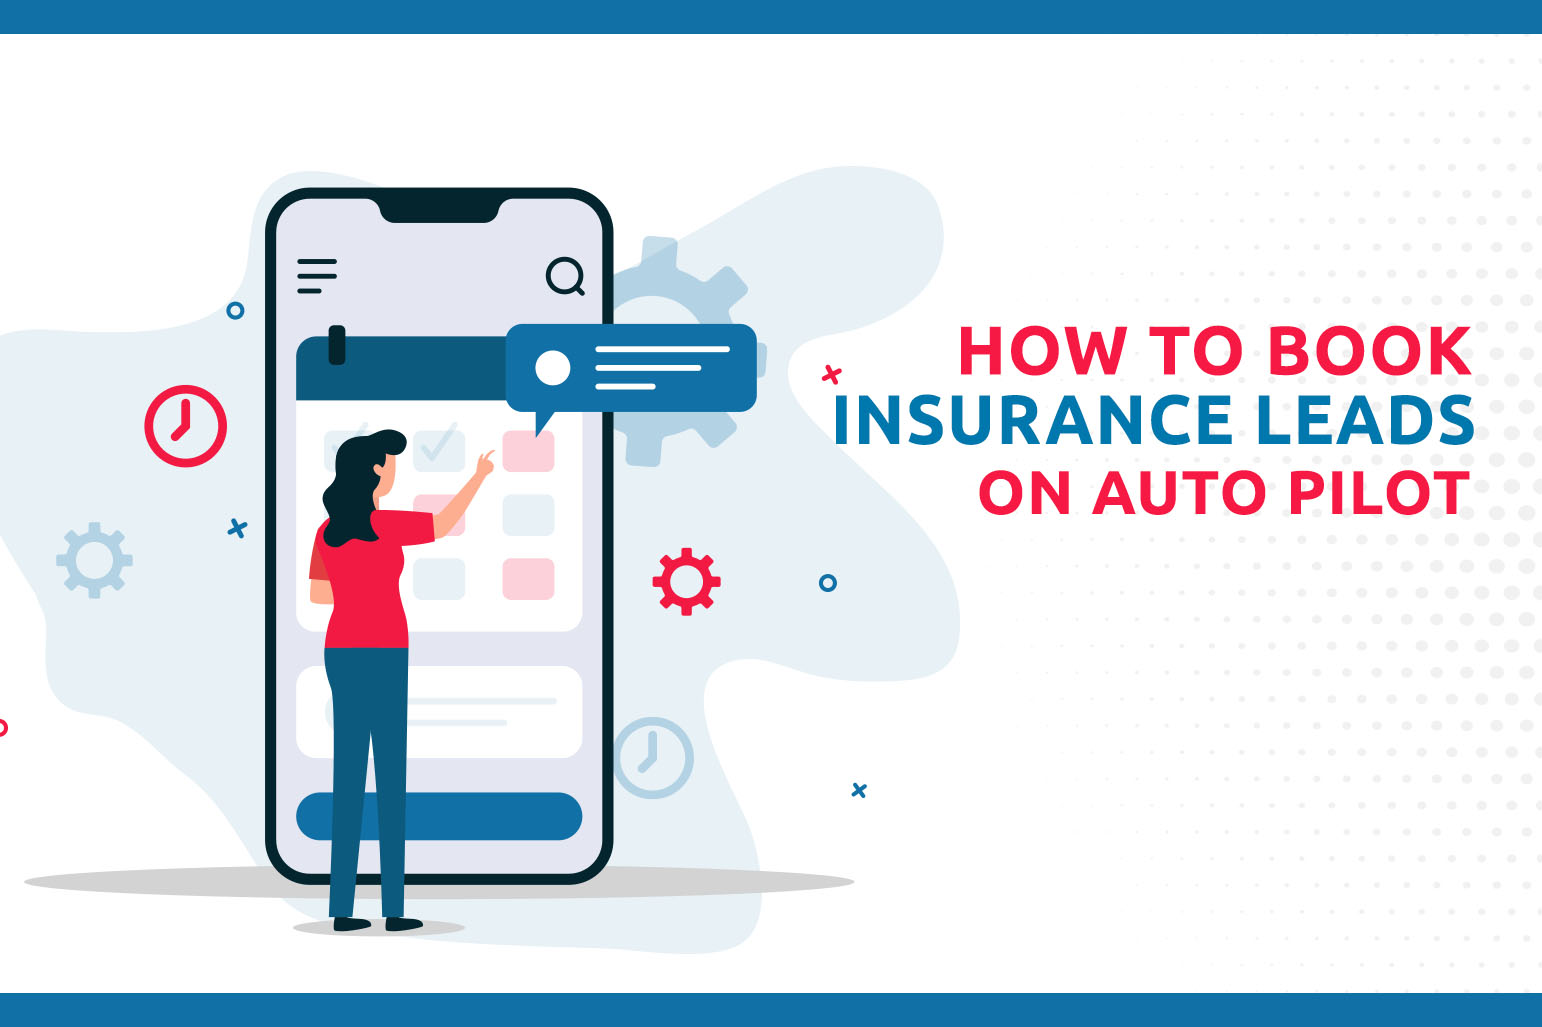 How To Book Insurance Leads On Autopilot